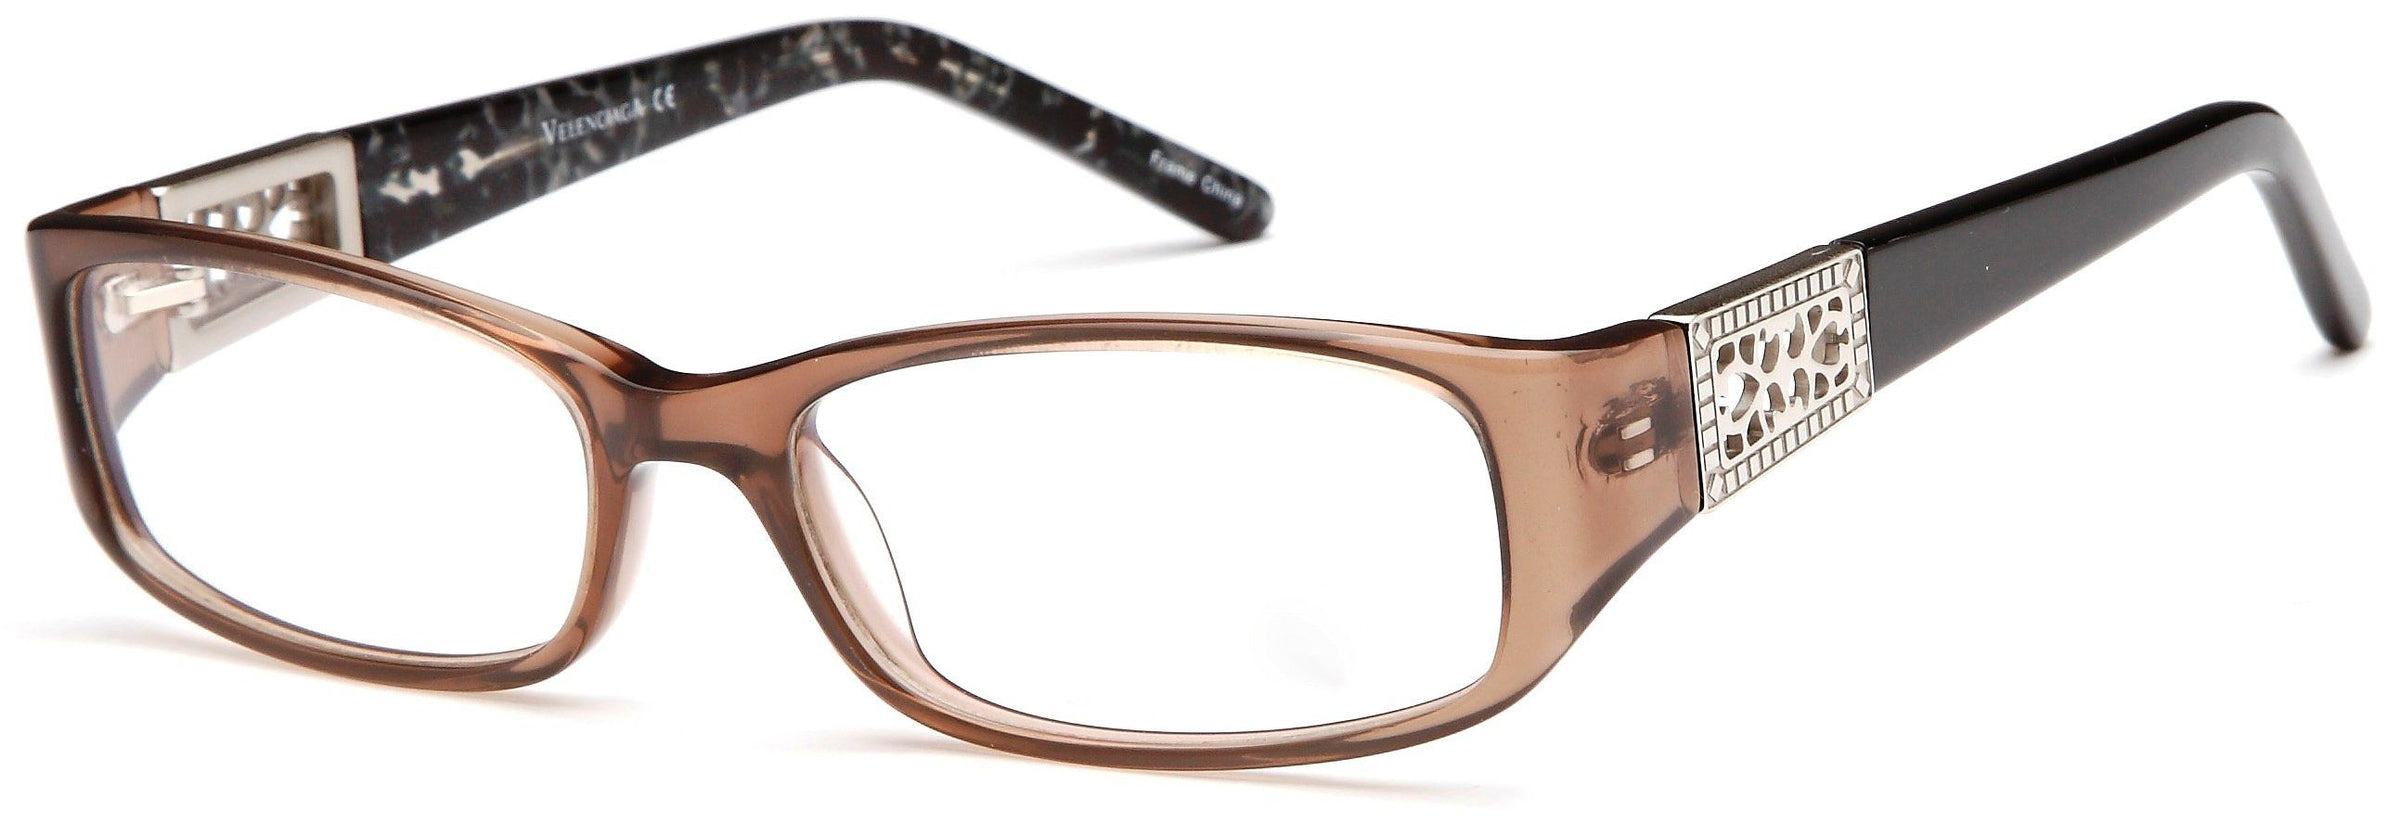 14cd6dec68f DALIX Womens Italy Patterned Prescription Glasses Frames Rxable Eyewear  DALIX Brown